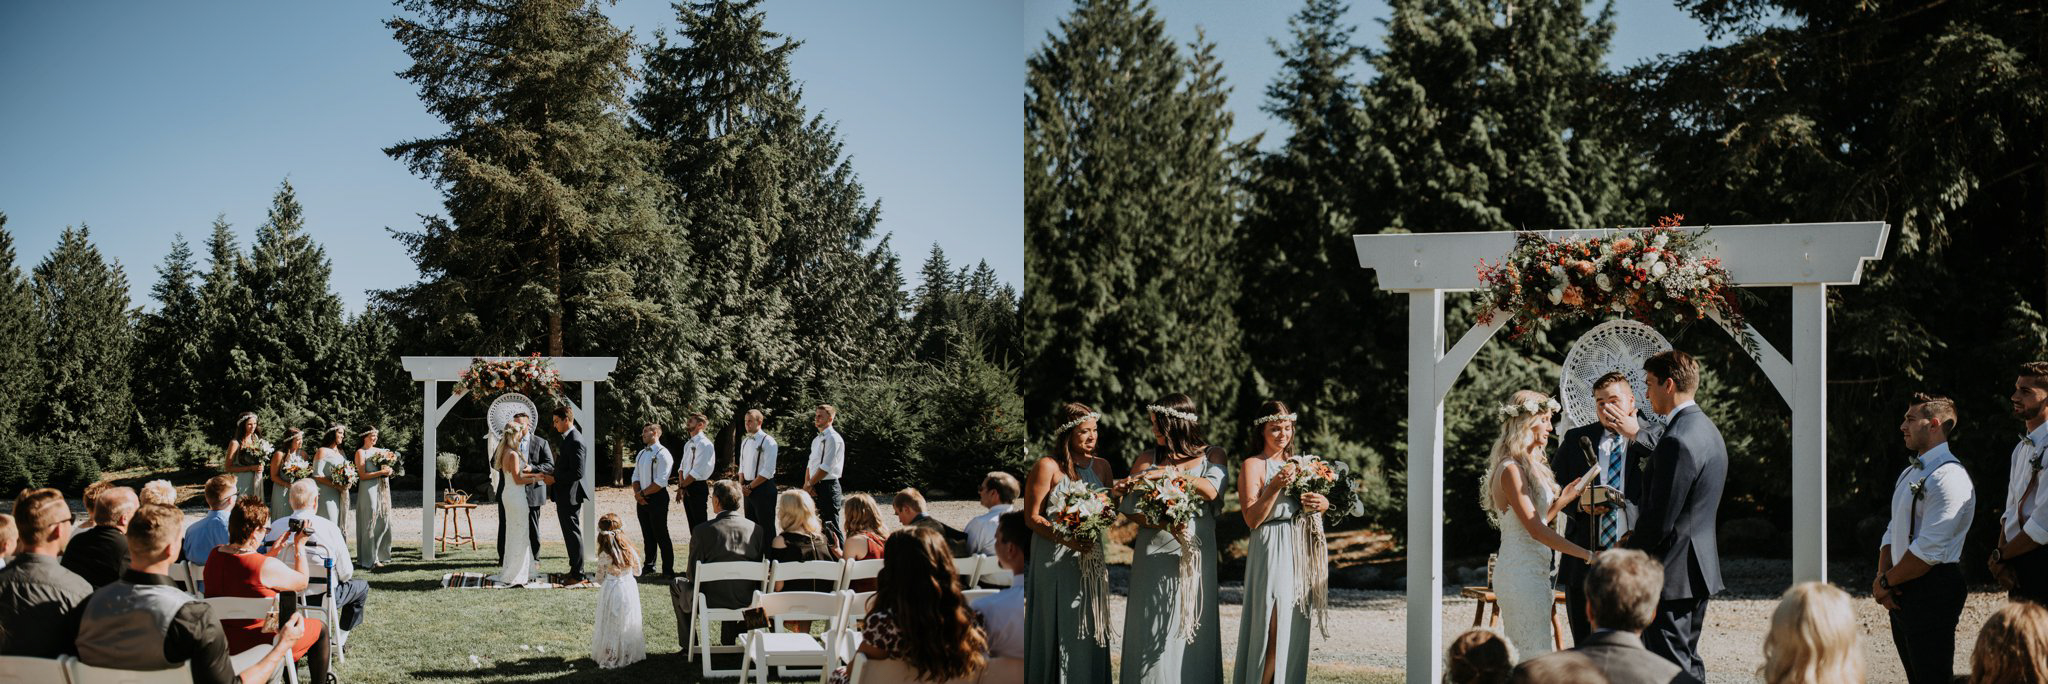 trinity-tree-farm-issaquah-washington-wedding-seattle-lifestyle-photographer-caitlyn-nikula-photography-71.jpg